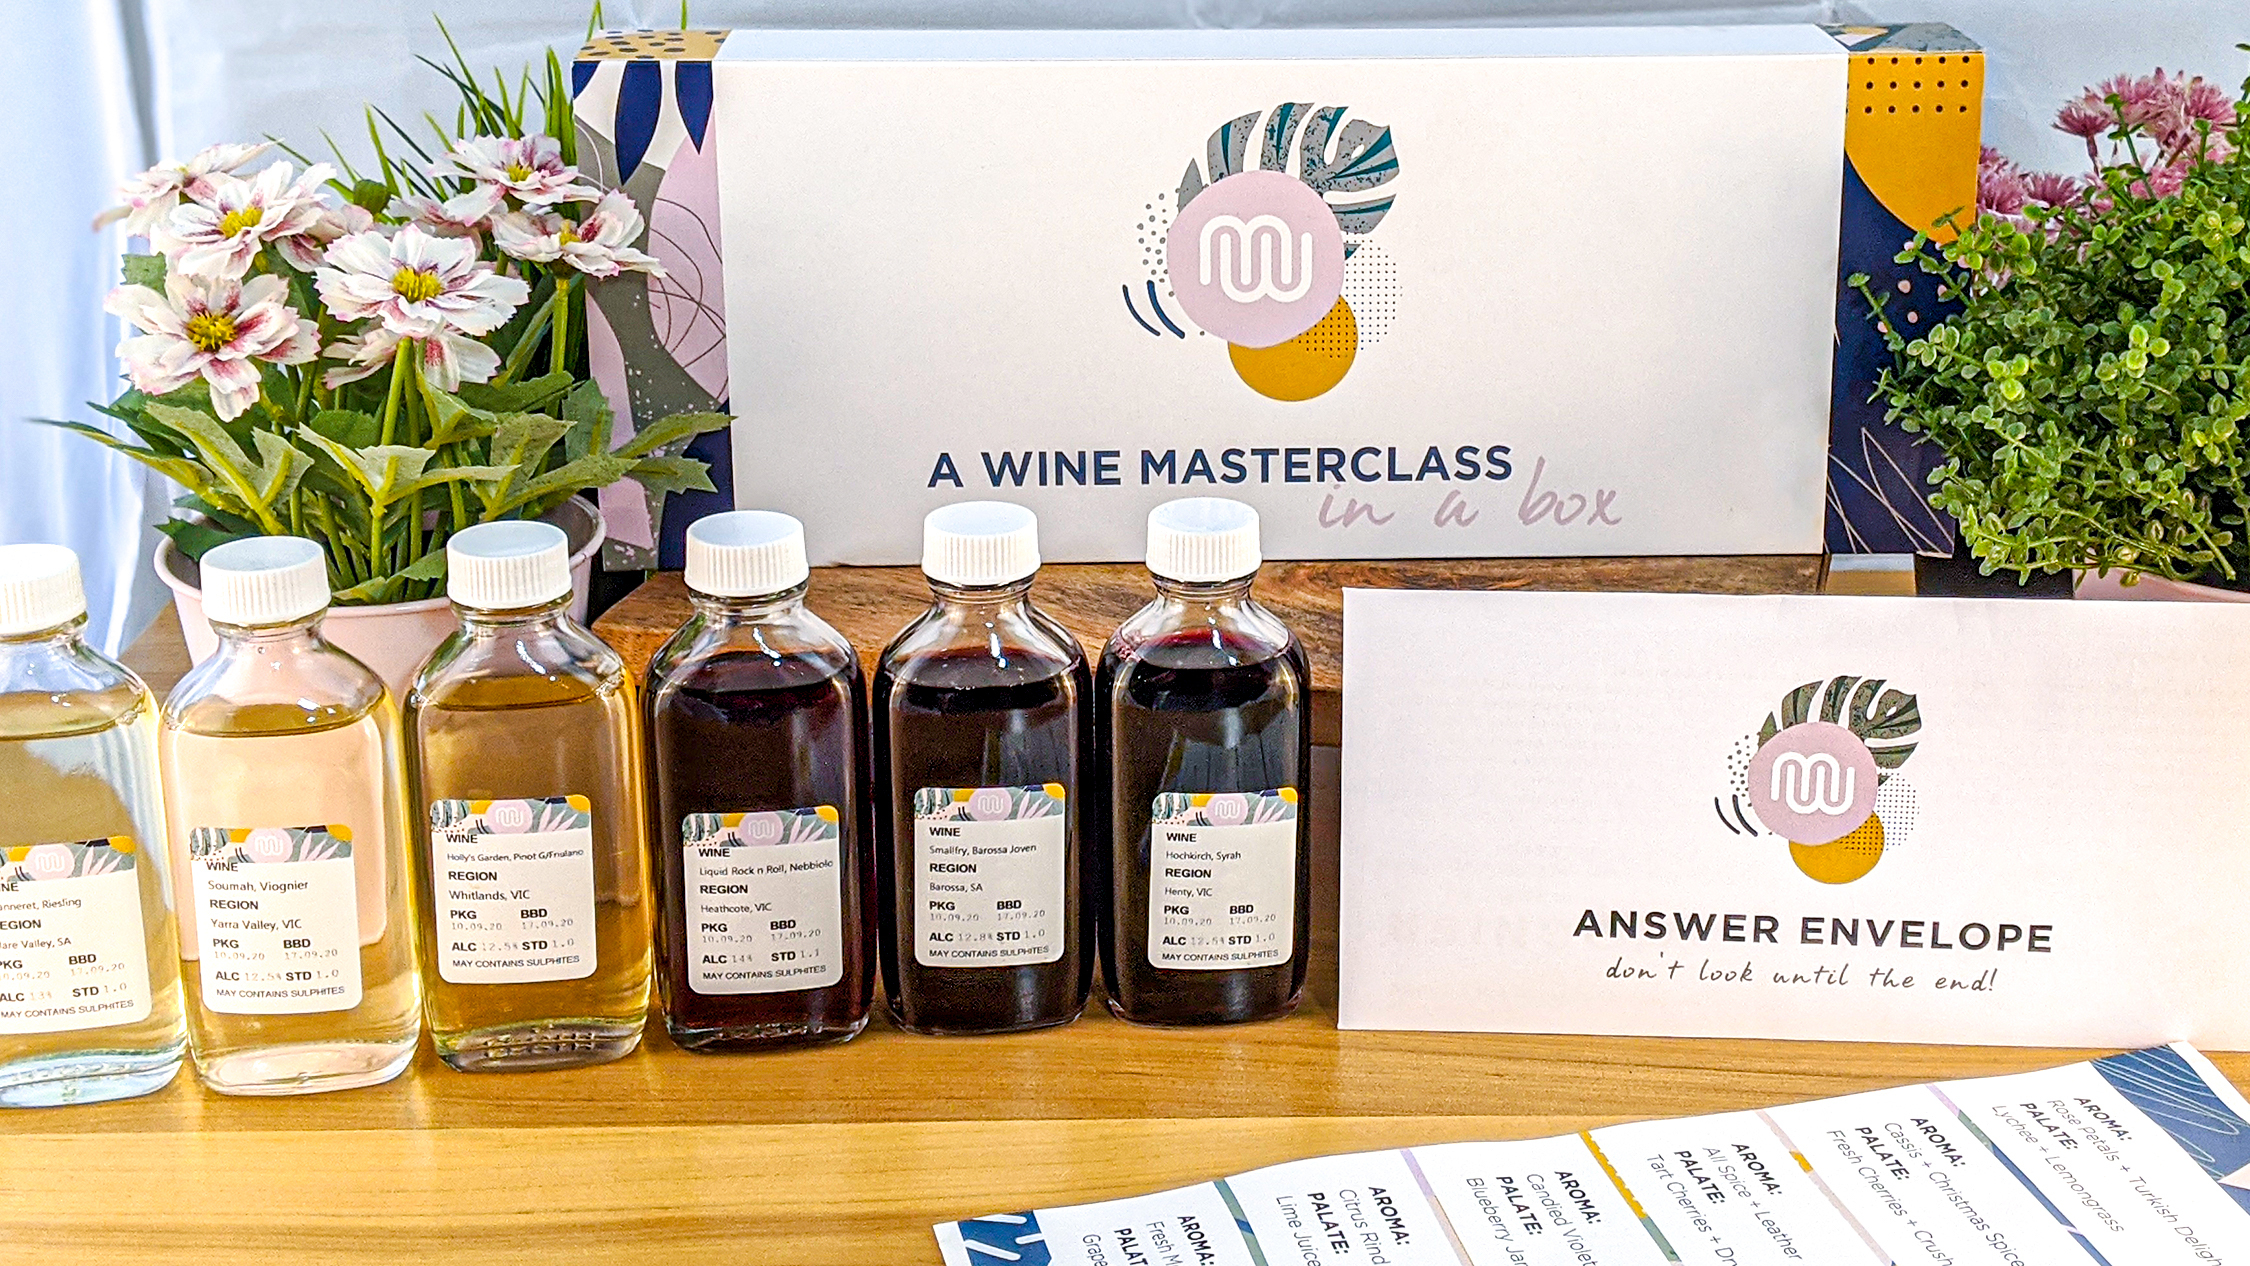 Try this fun, interactive wine tasting kit this weekend